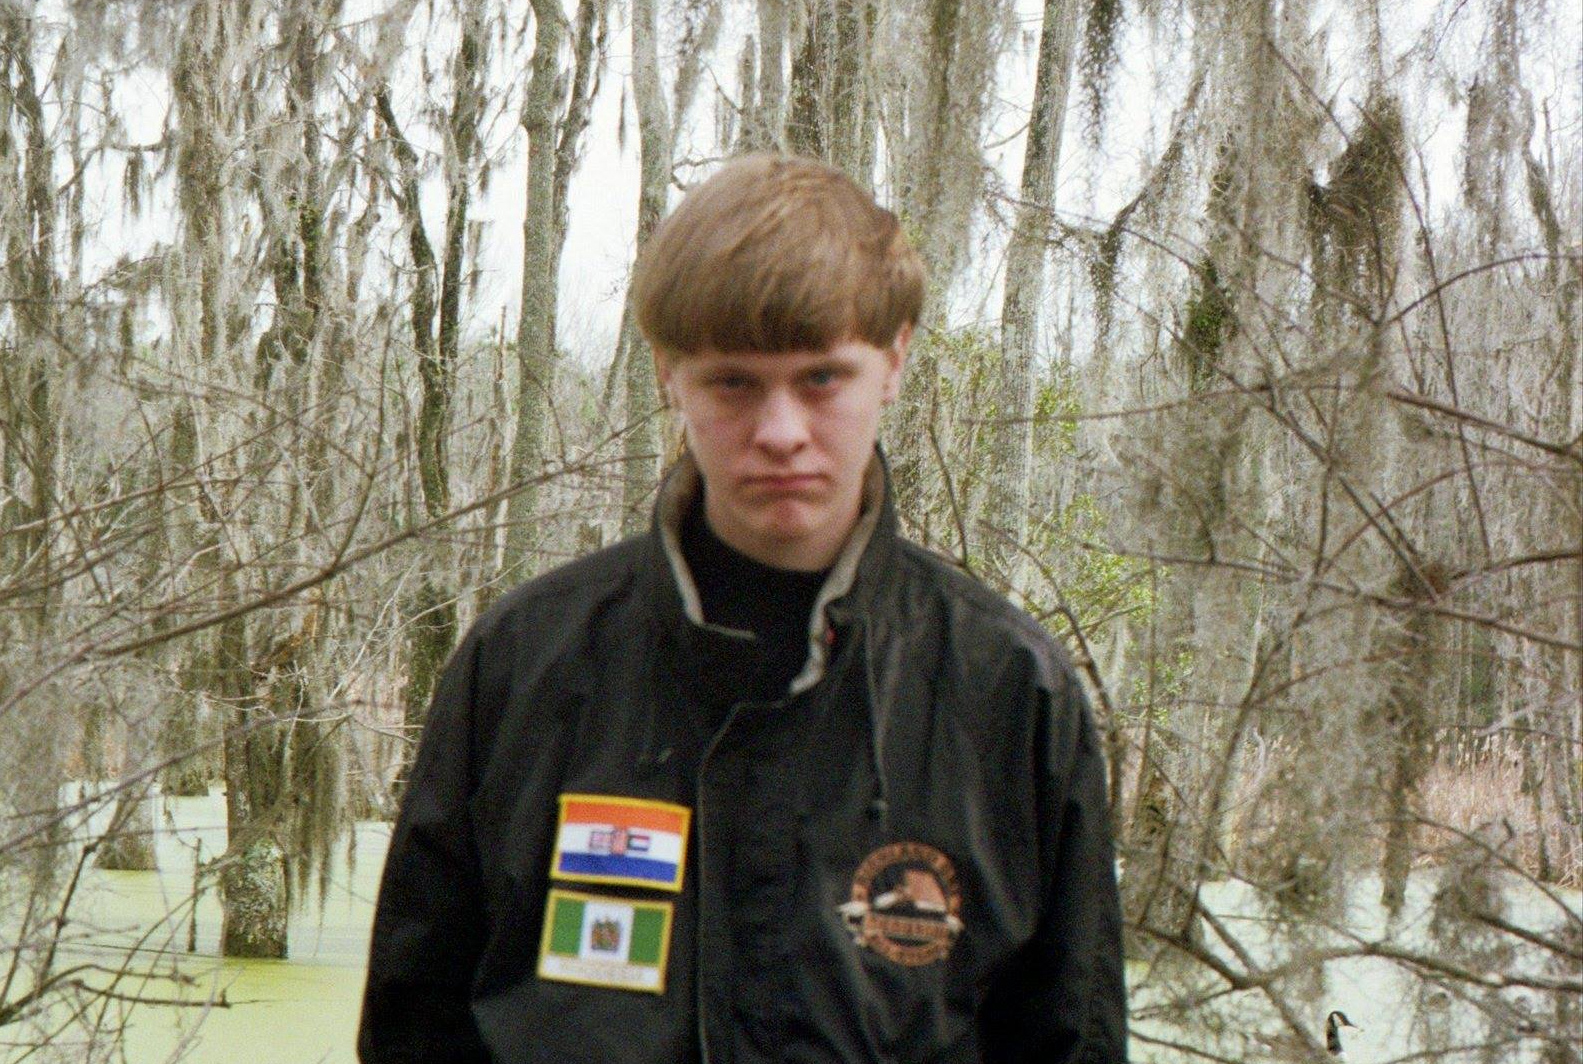 South Carolina Shooting What We Know About Suspect Dylann Storm Roof 21 Cbs News